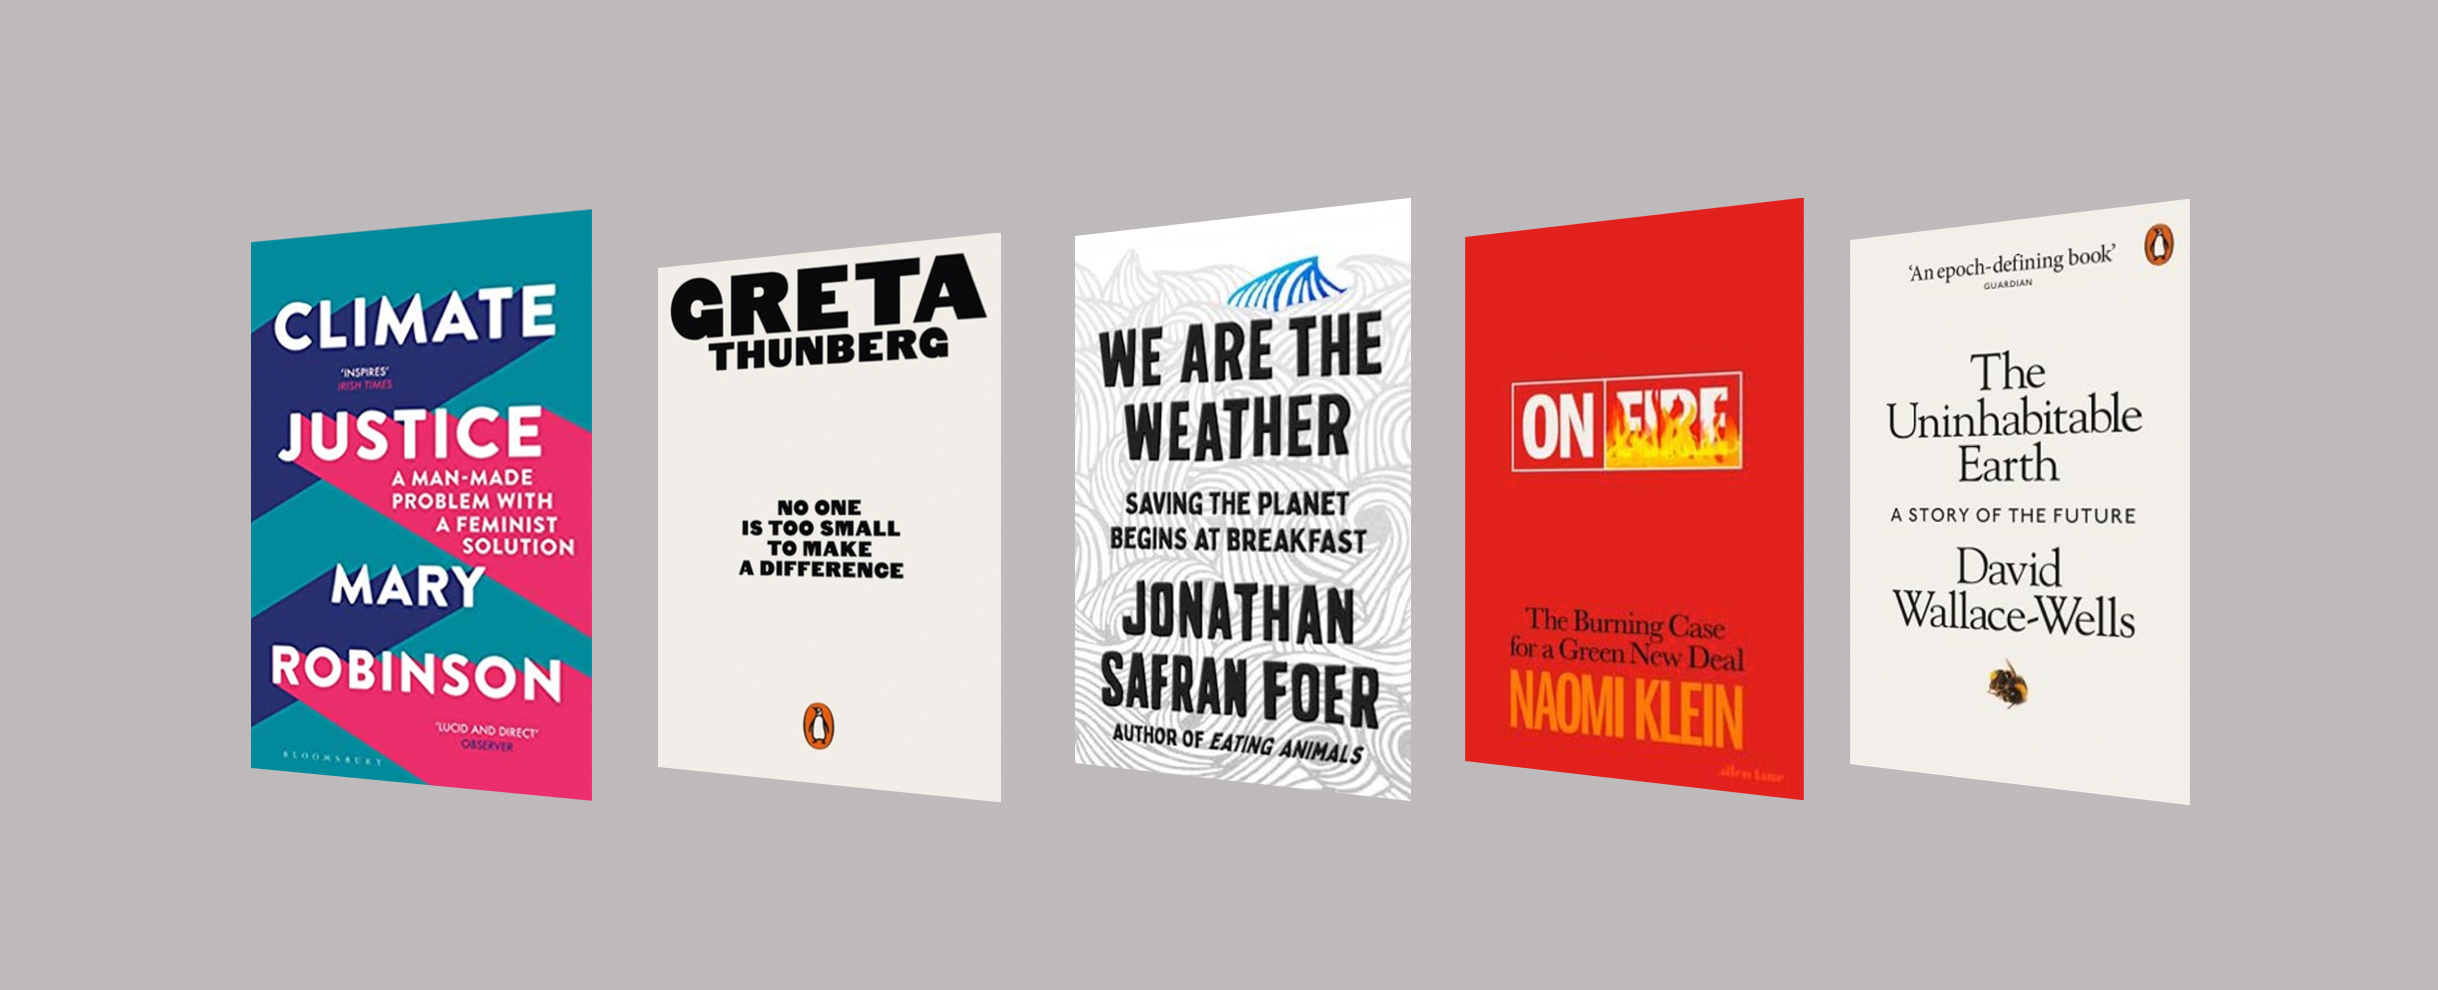 Climate Crisis Smart Thinking Books